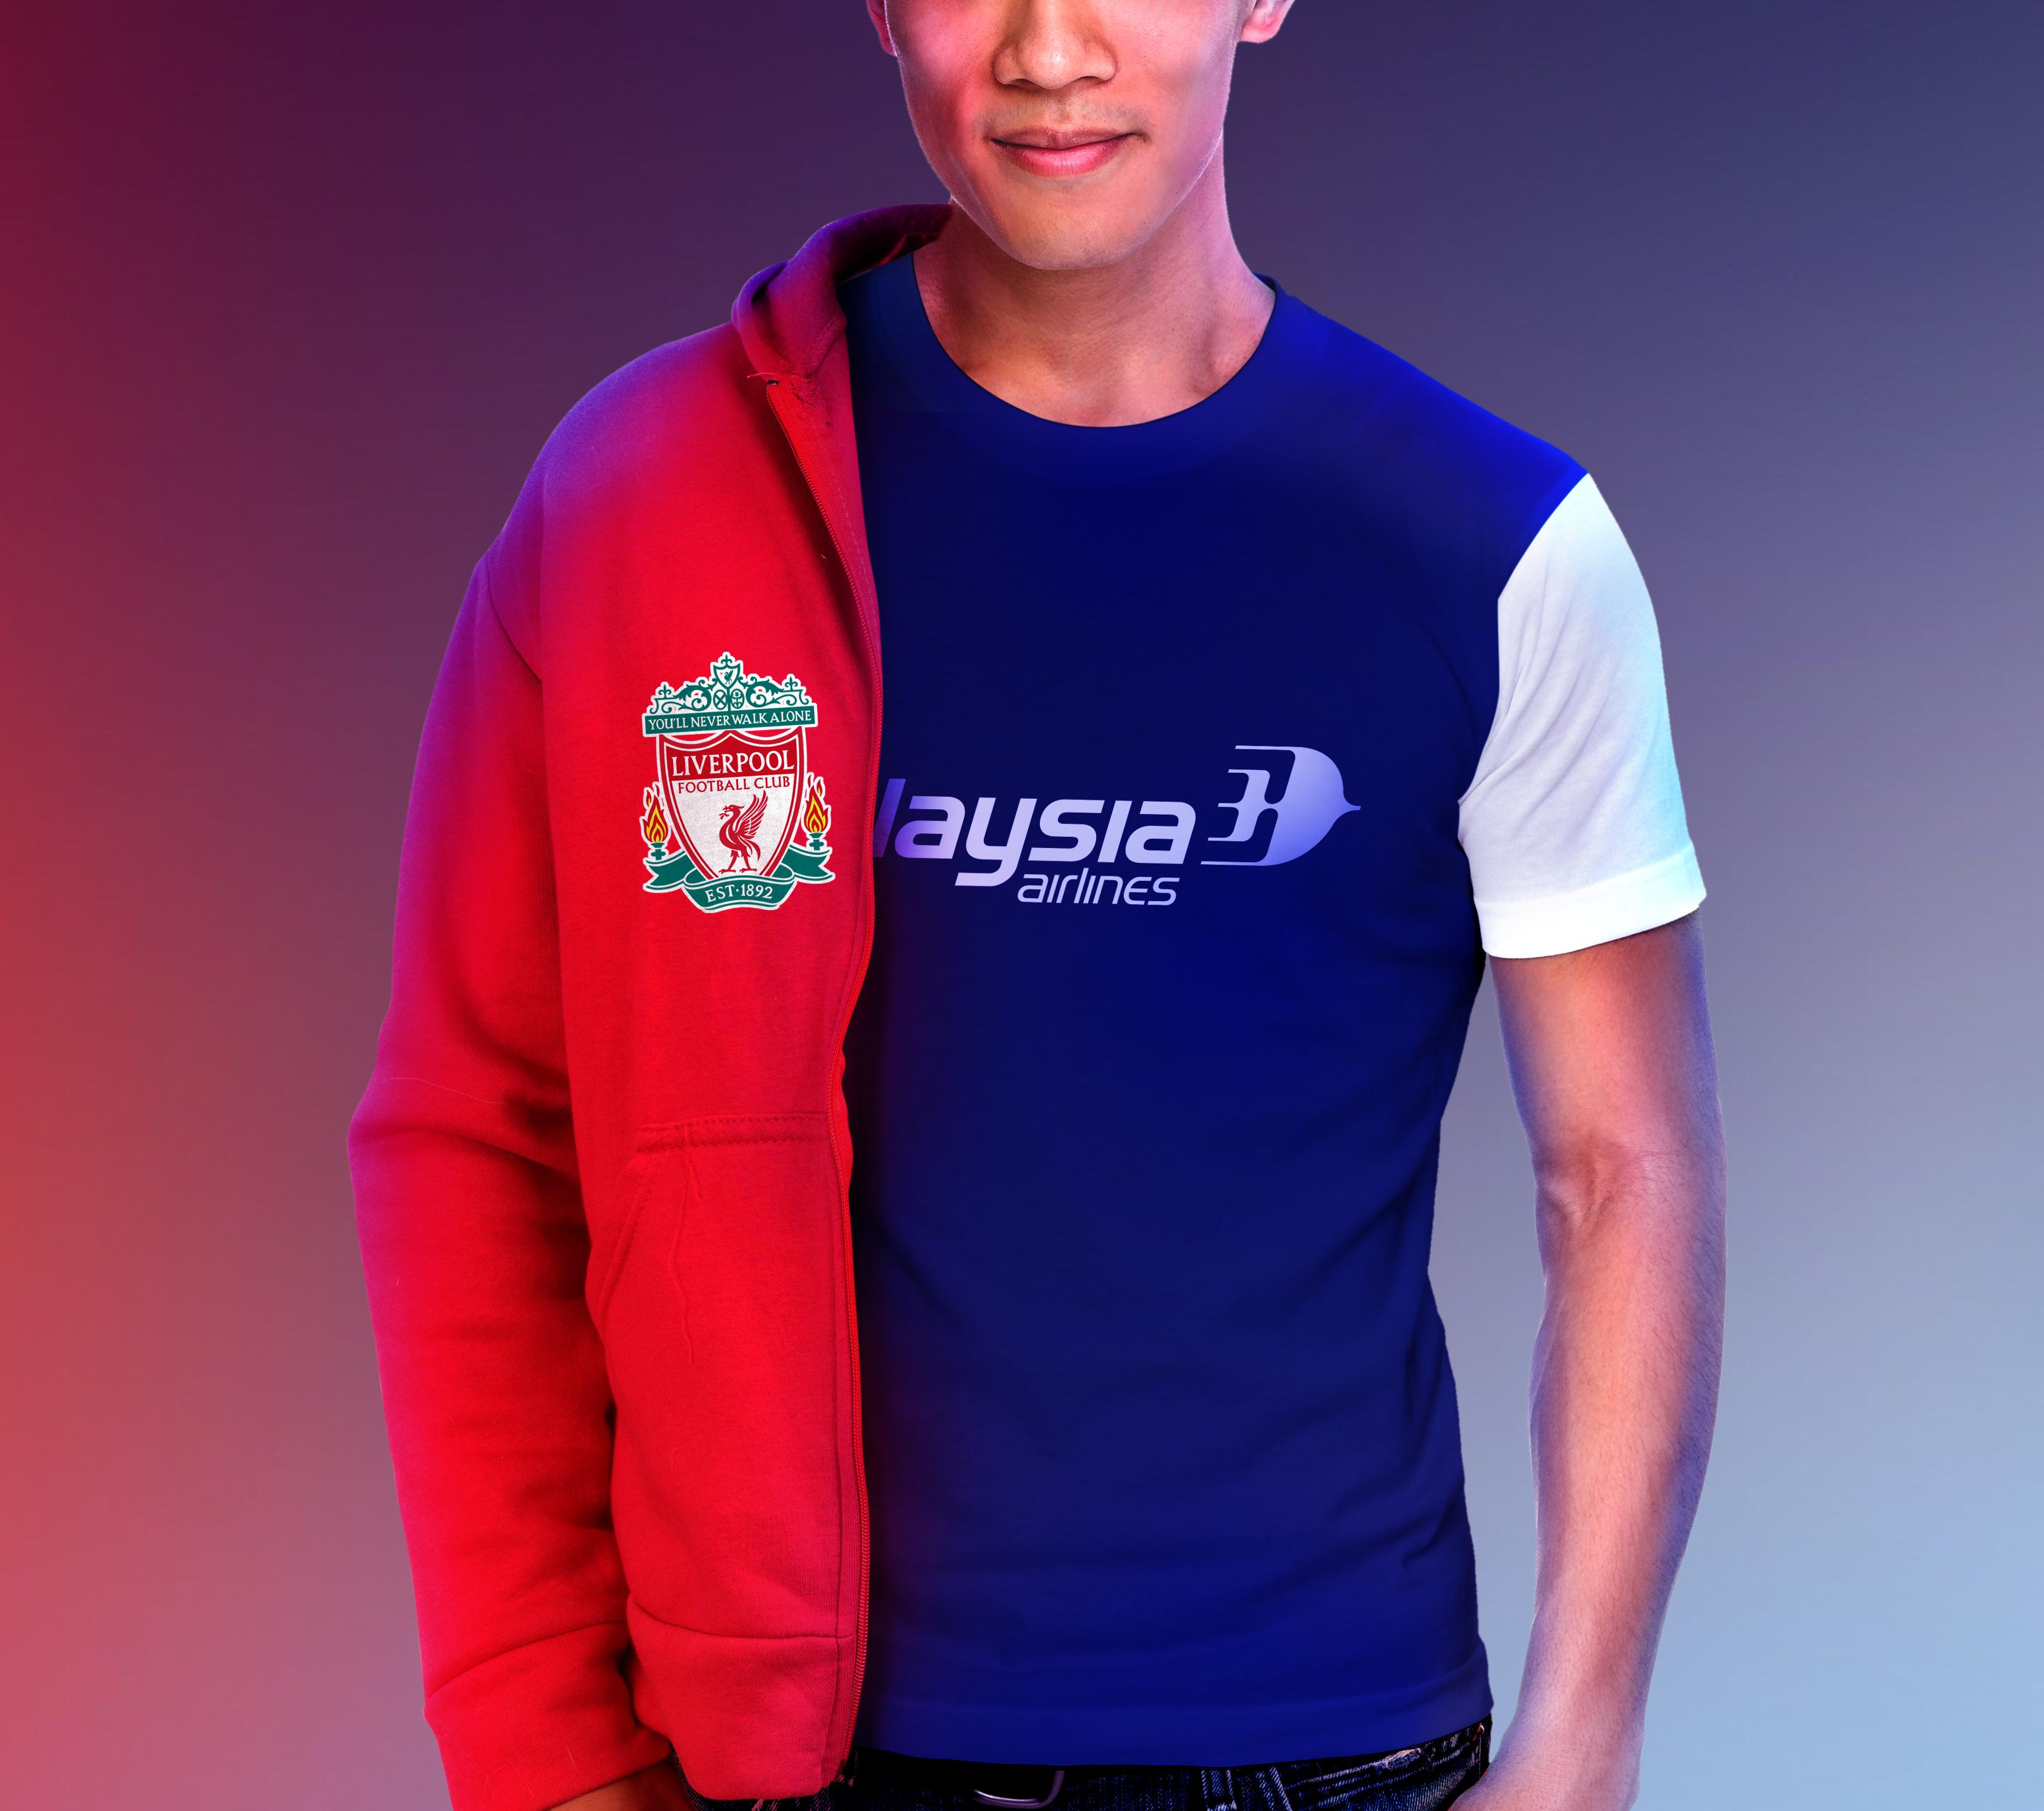 Unite Malaysia Airlines And Liverpool And Stand A Chance To Visit